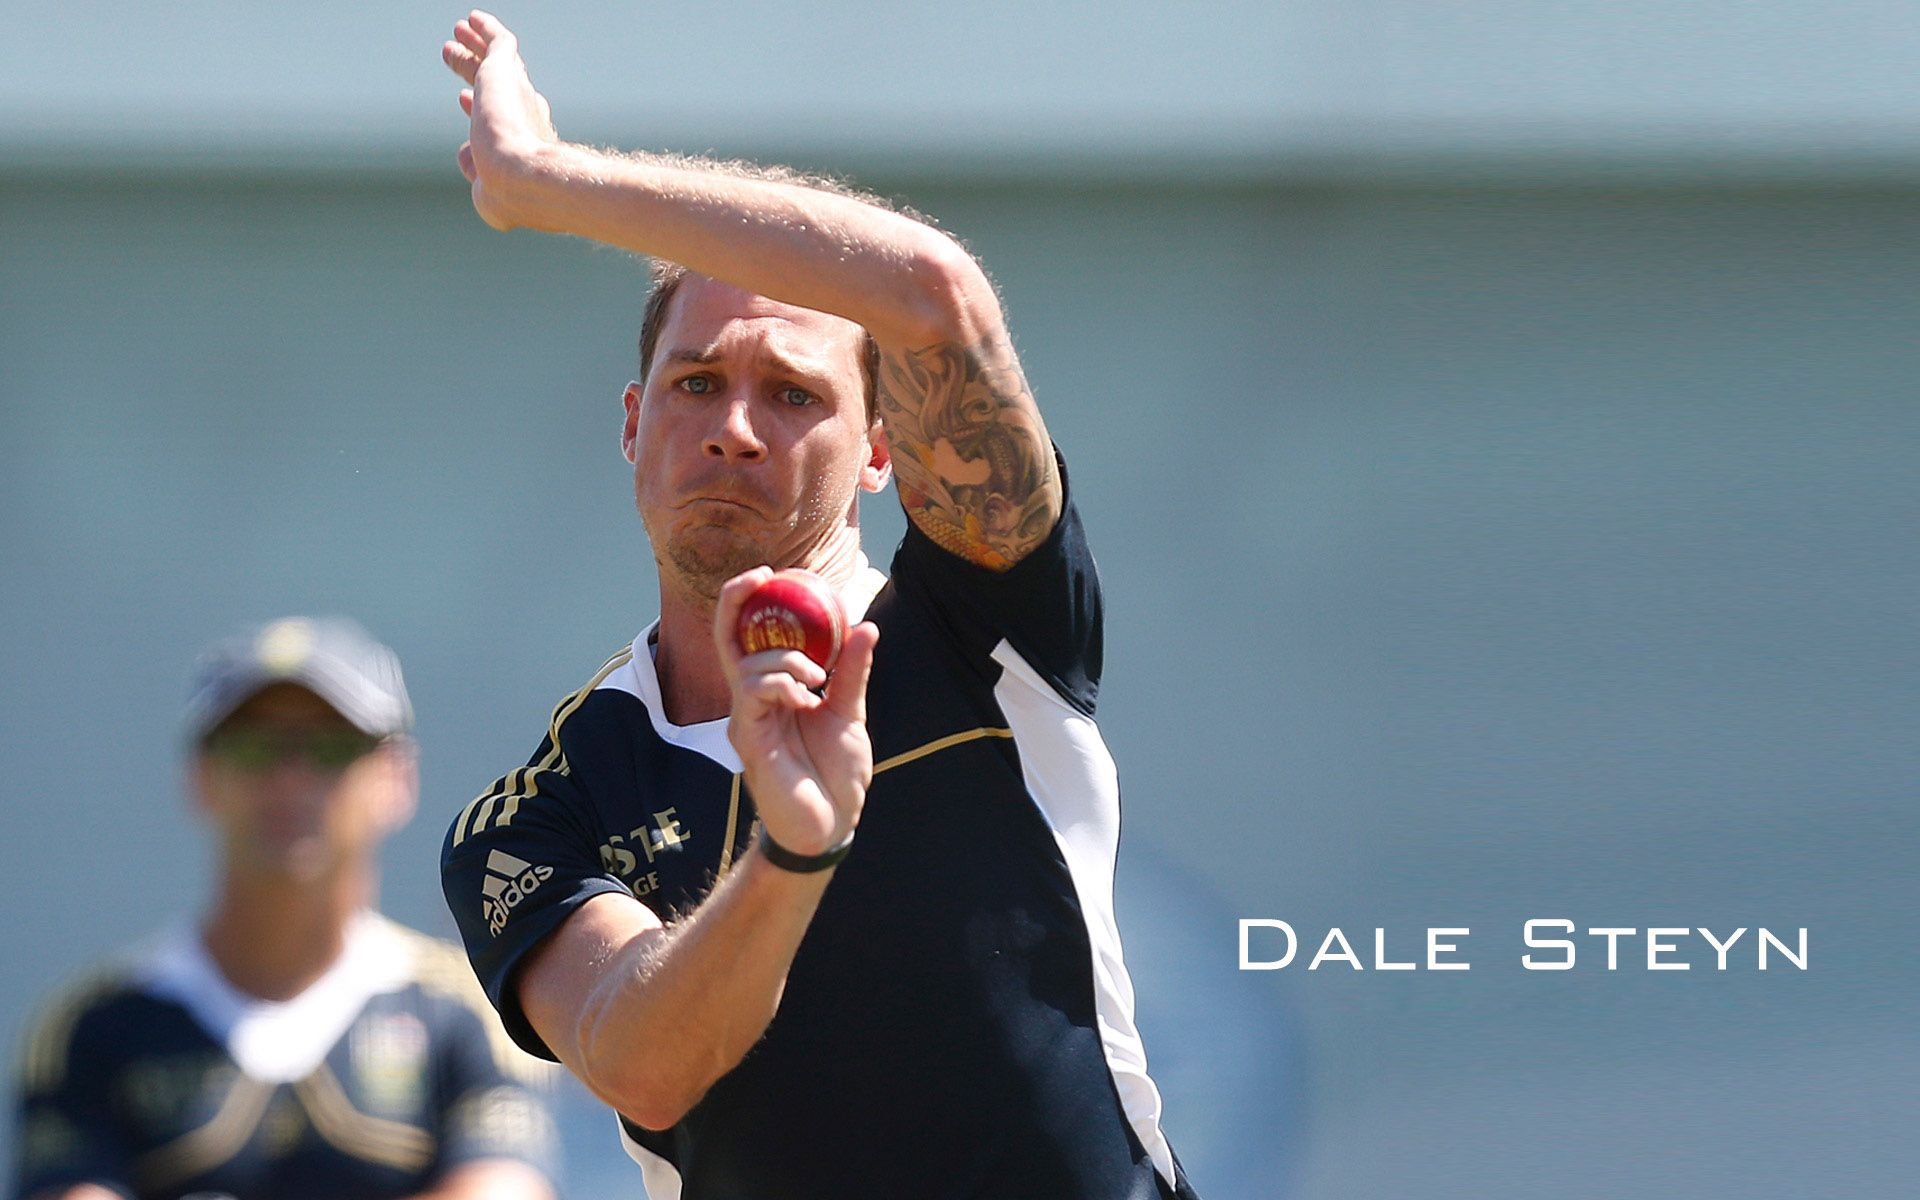 Dale Steyn Fast Bowler Hq Picture Bowler Hd Images Dale